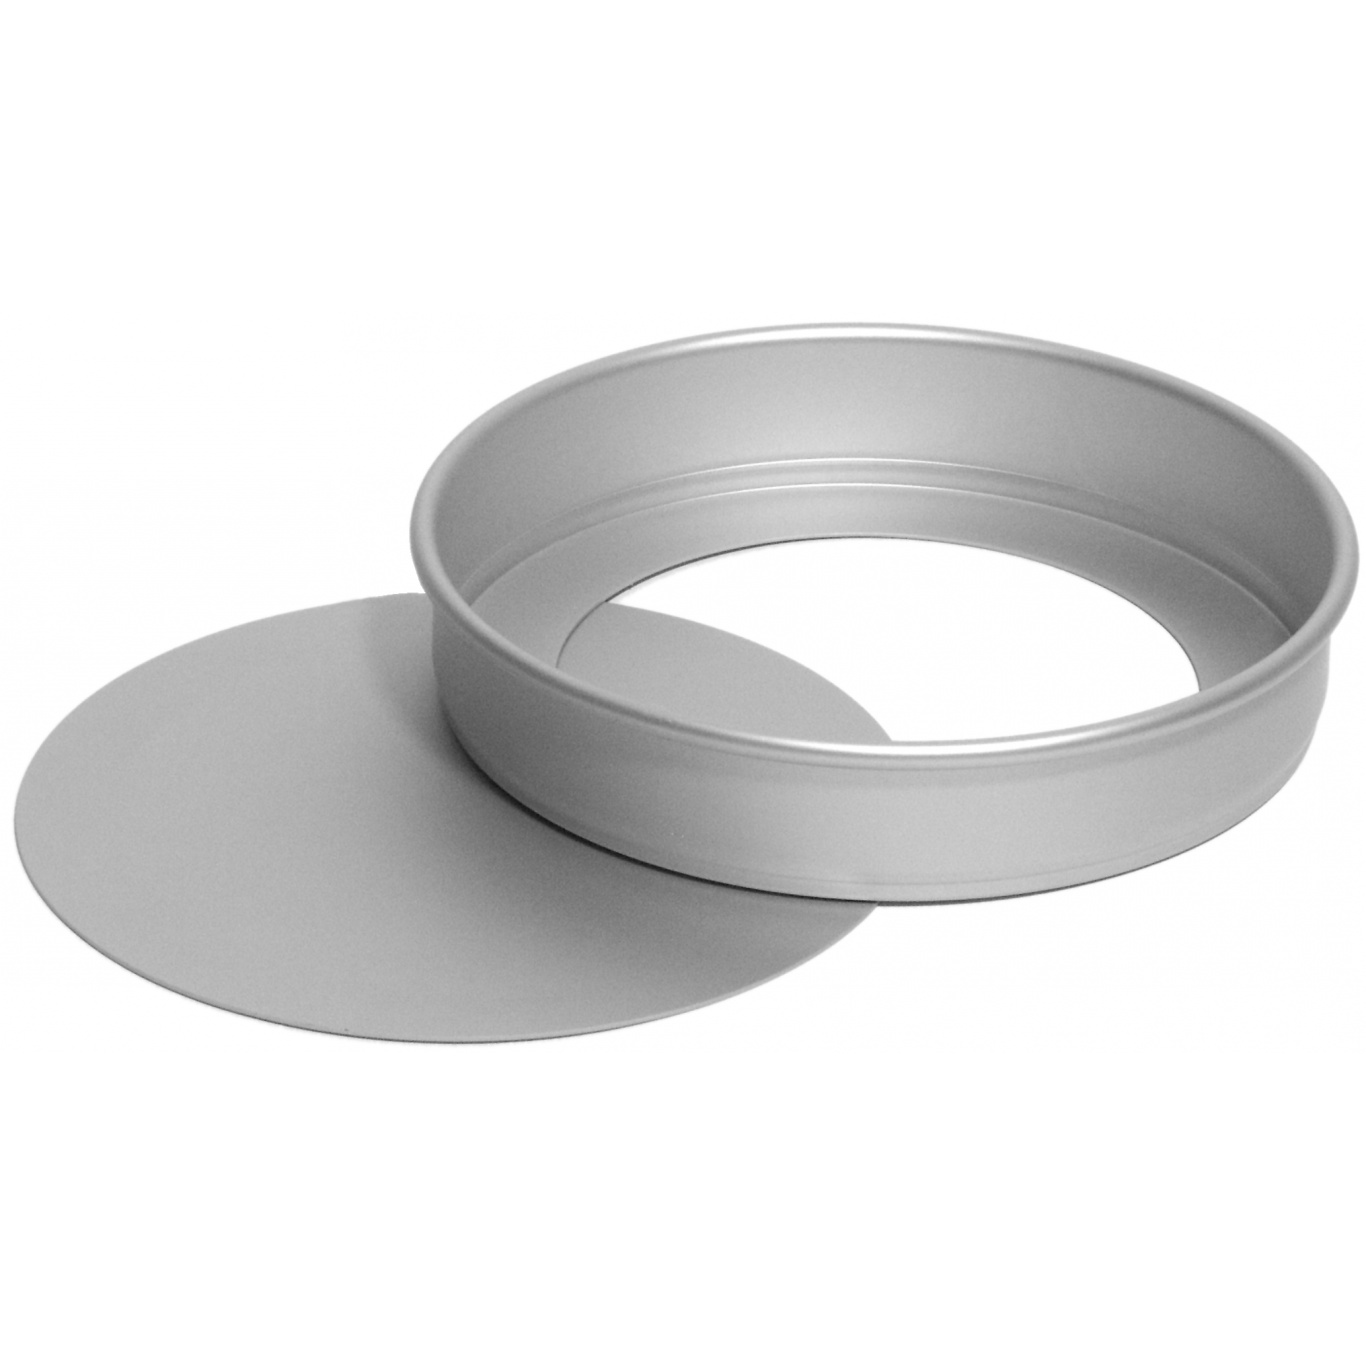 Image of Silverwood Round Sandwich Pan Loose Base 10ins/25.5cm